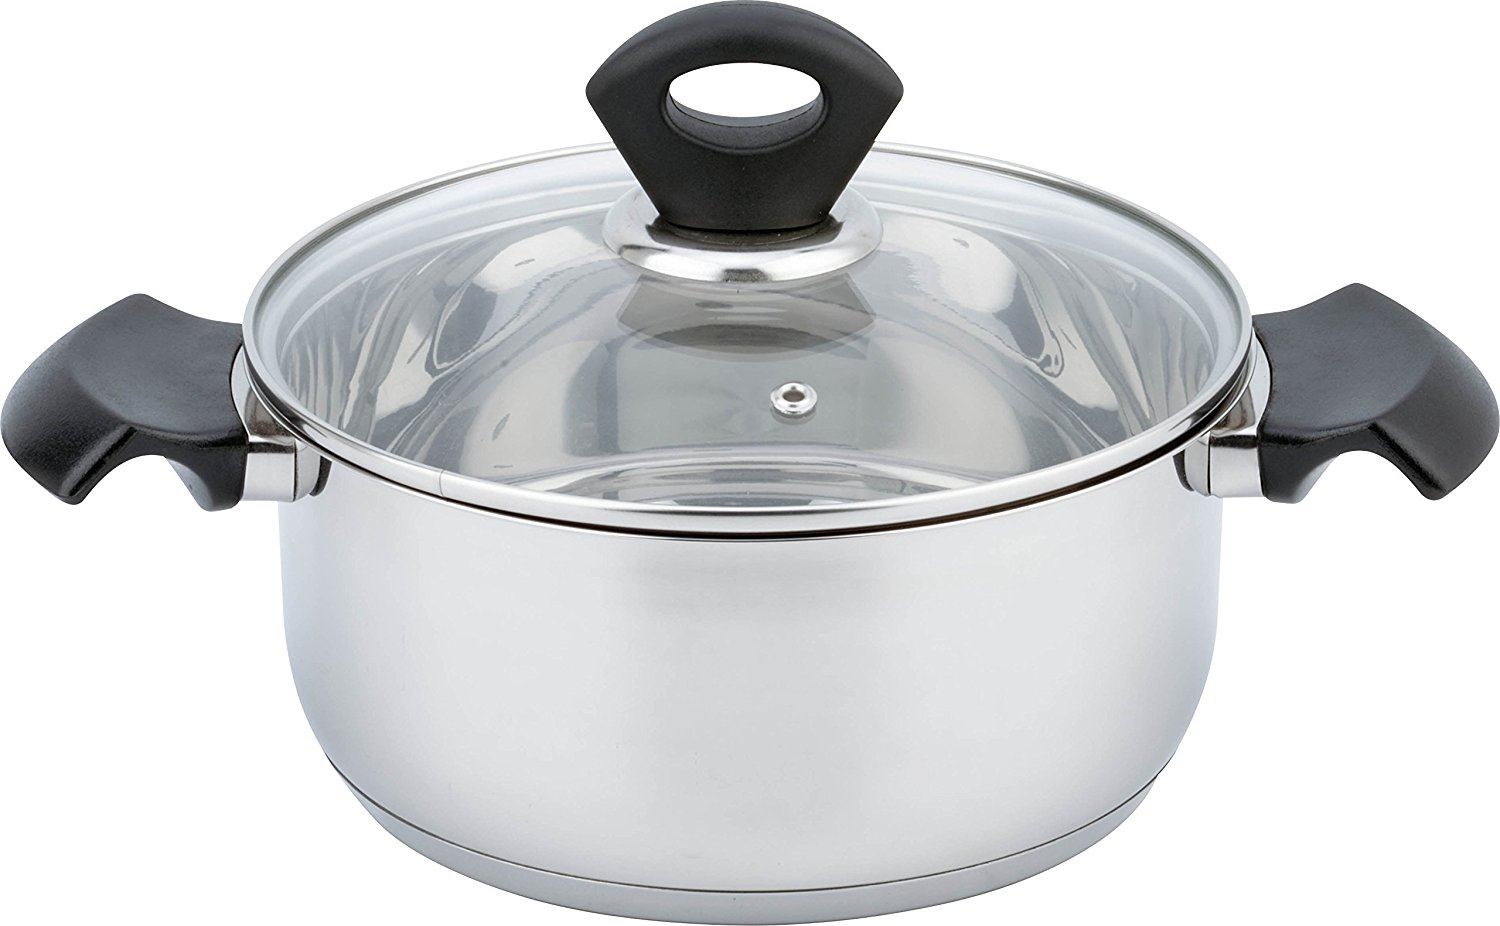 All For You Mirror Polish Stainless Steel Kitchen Induction Cookware Casserole with G Type Shock Resistant... by All For You Home